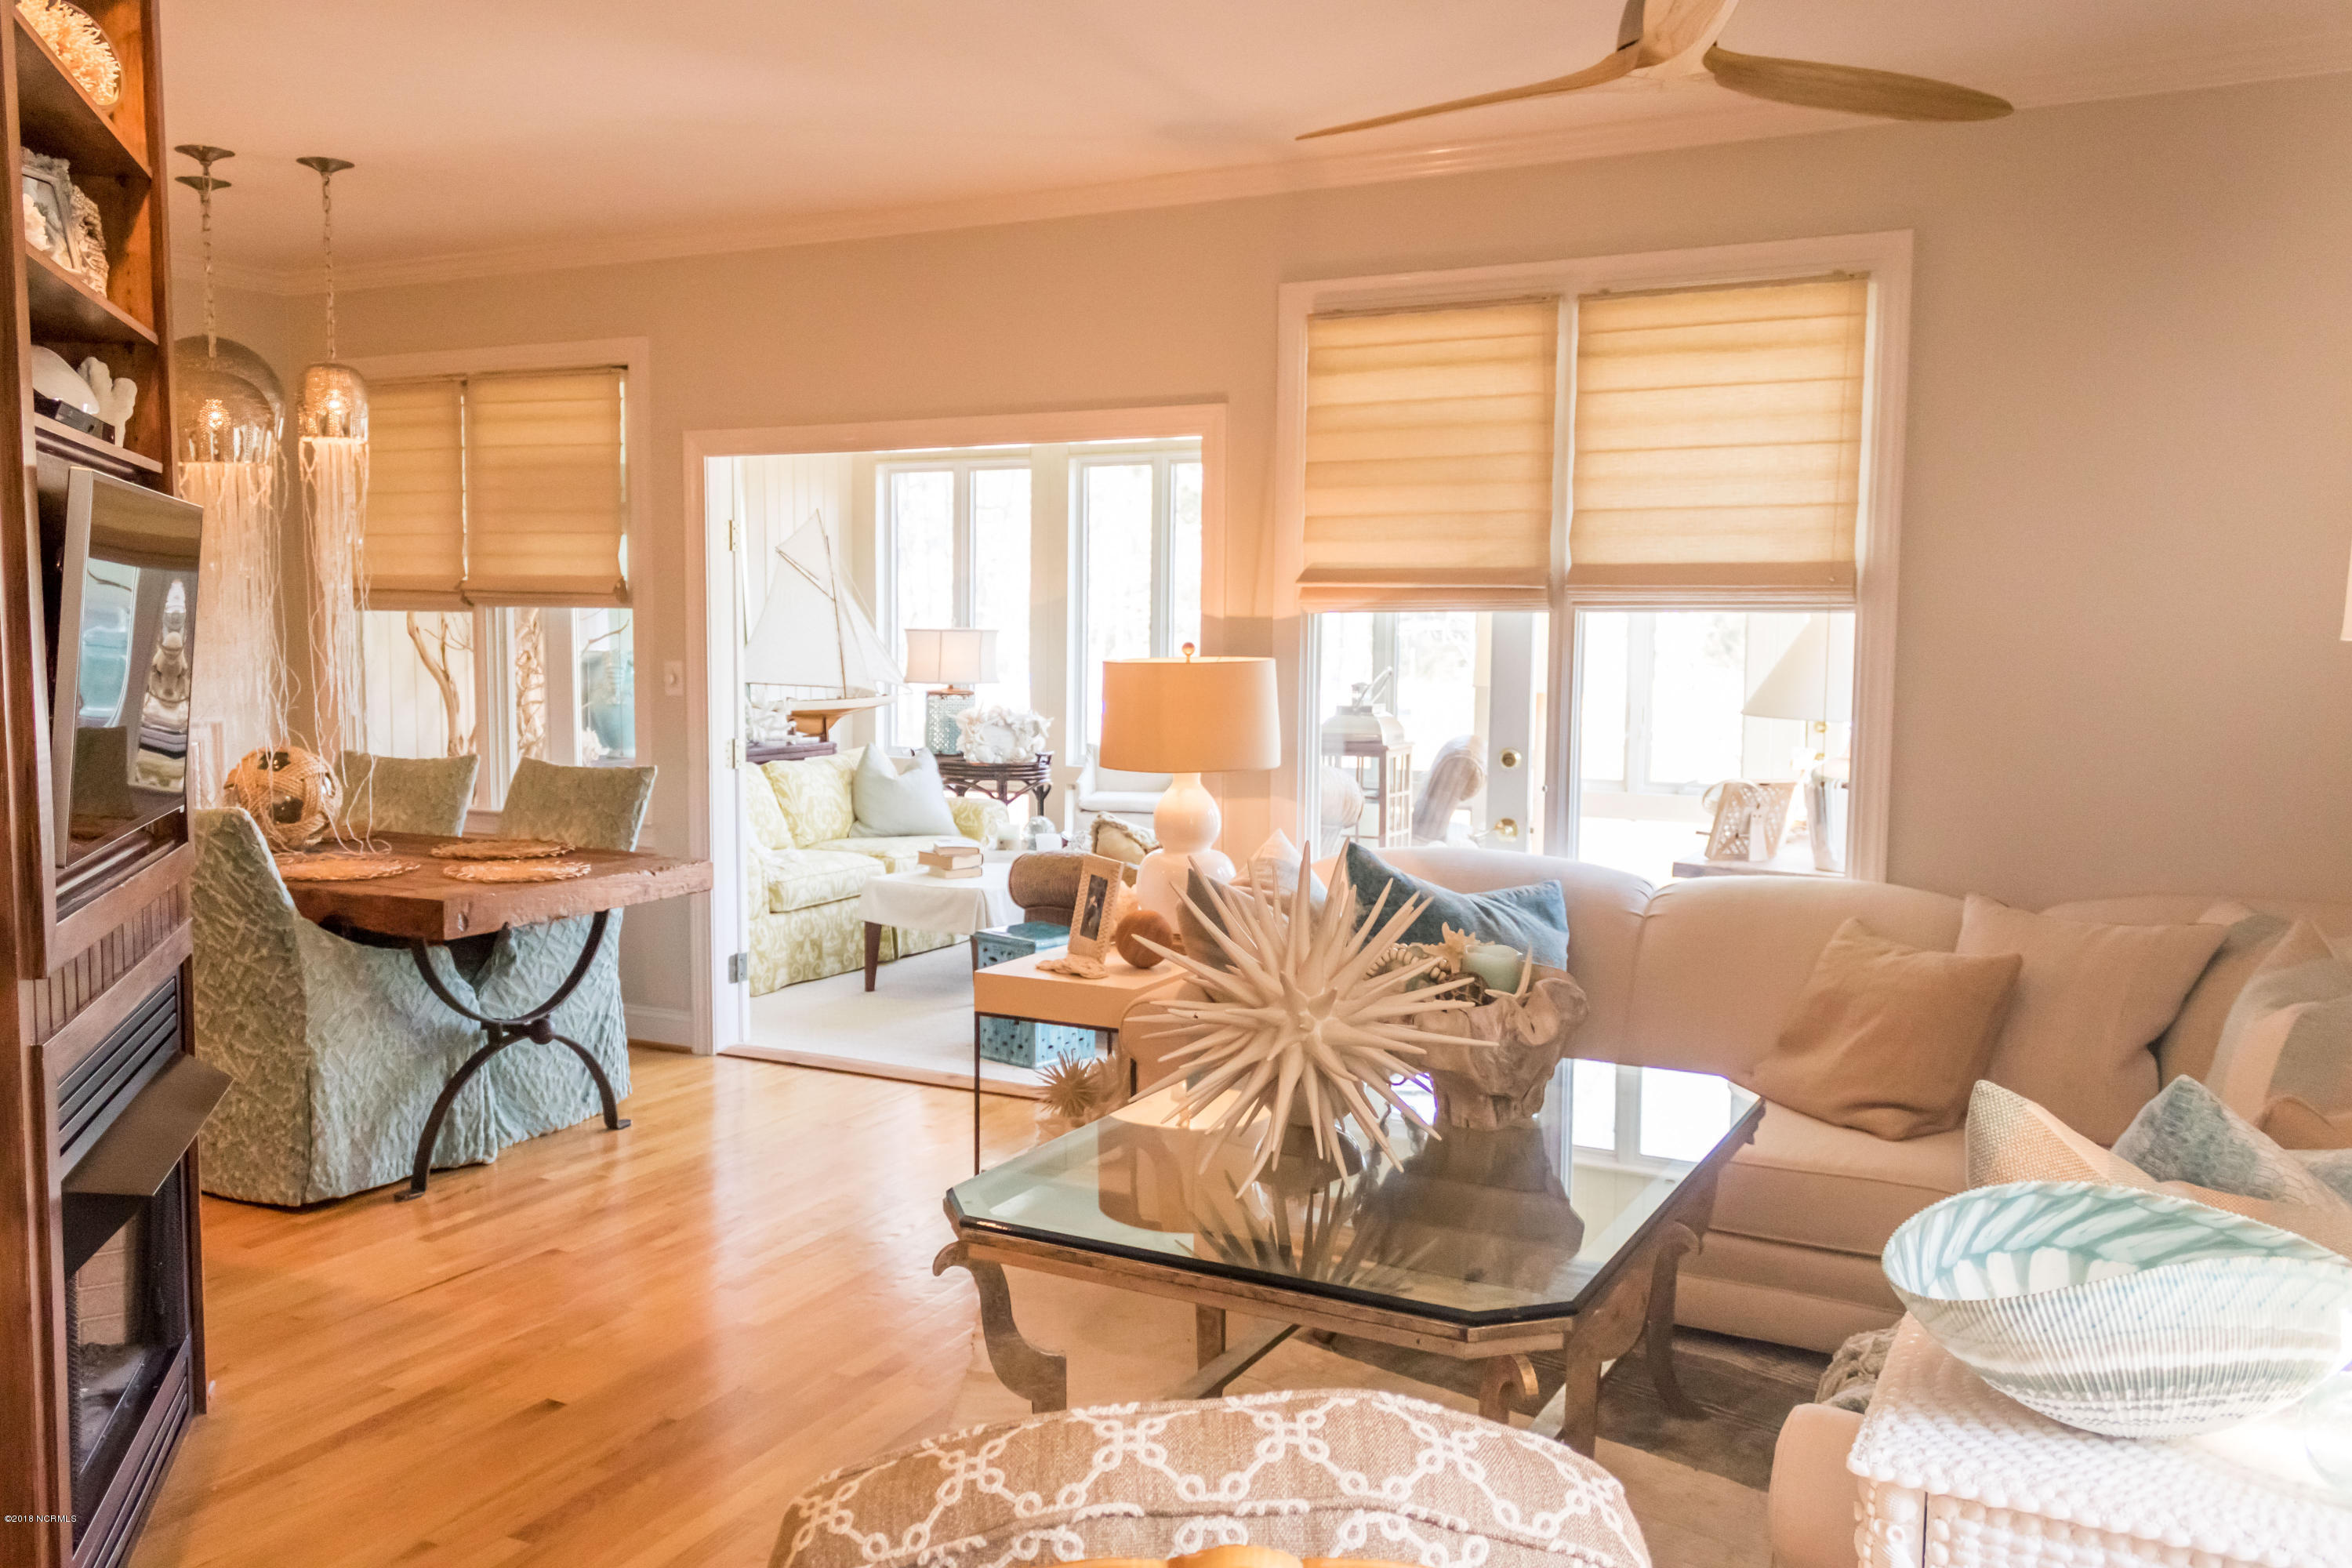 1404 Tosto Circle, Oriental, North Carolina 28571, 2 Bedrooms Bedrooms, 7 Rooms Rooms,2 BathroomsBathrooms,Townhouse,For sale,Tosto,100170006